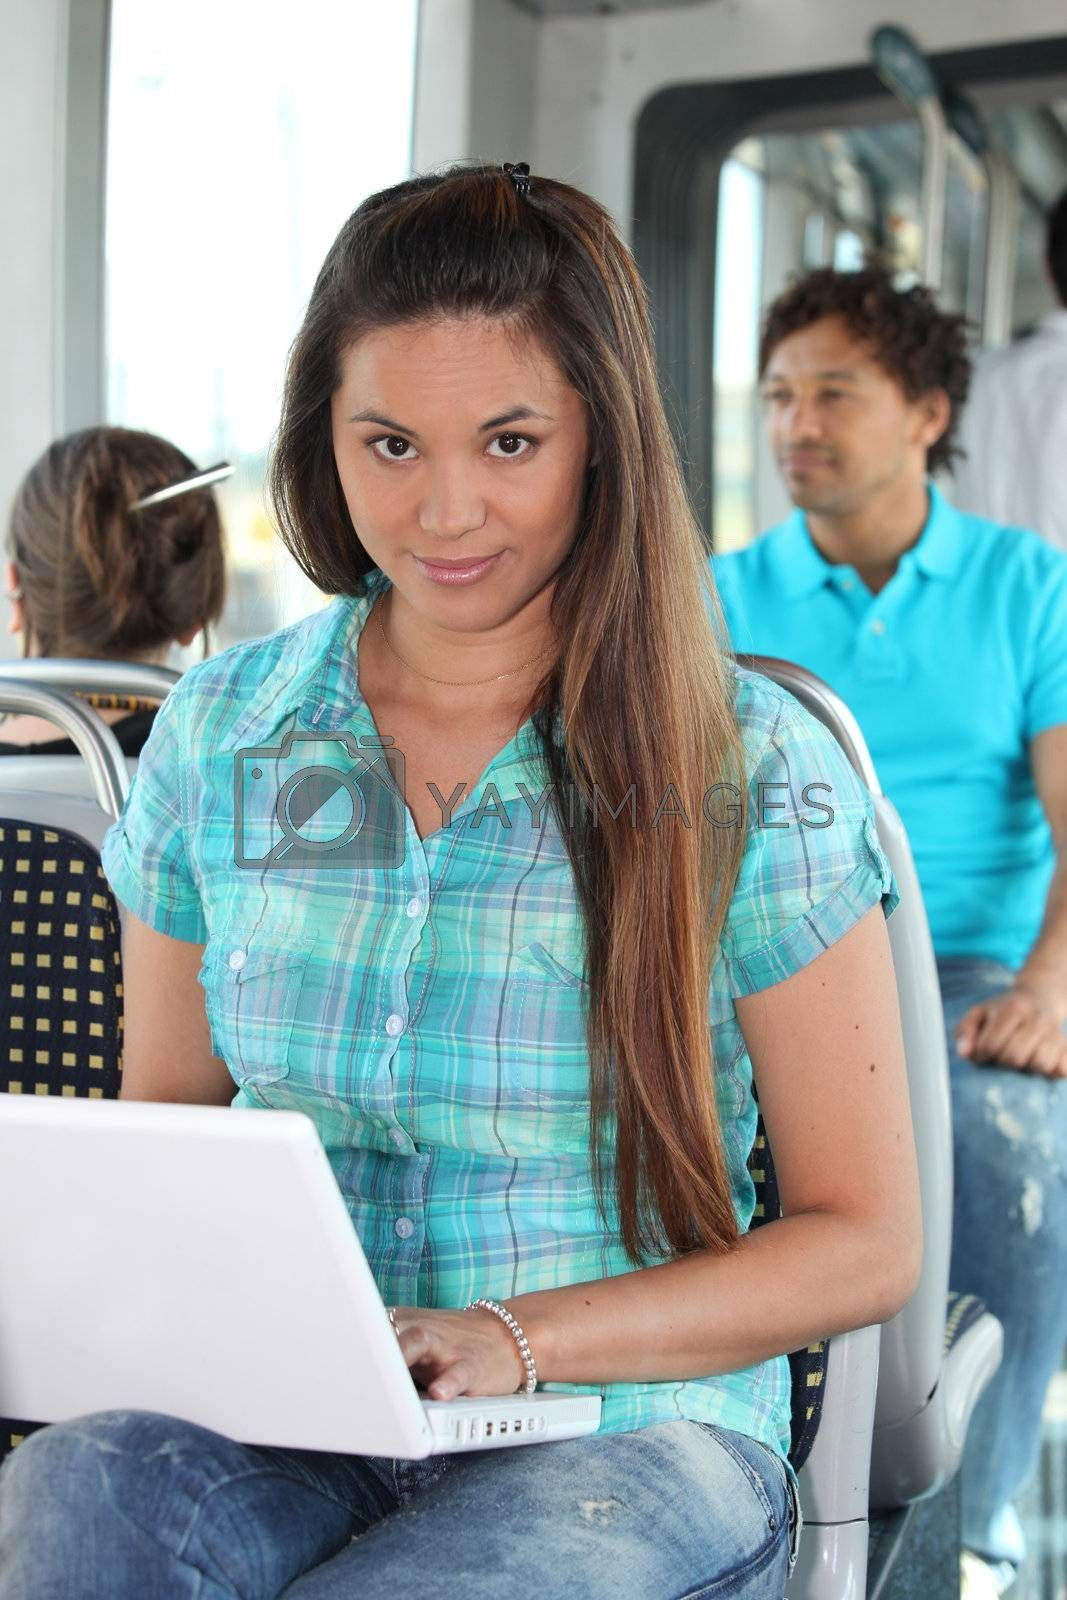 young woman in public transportation